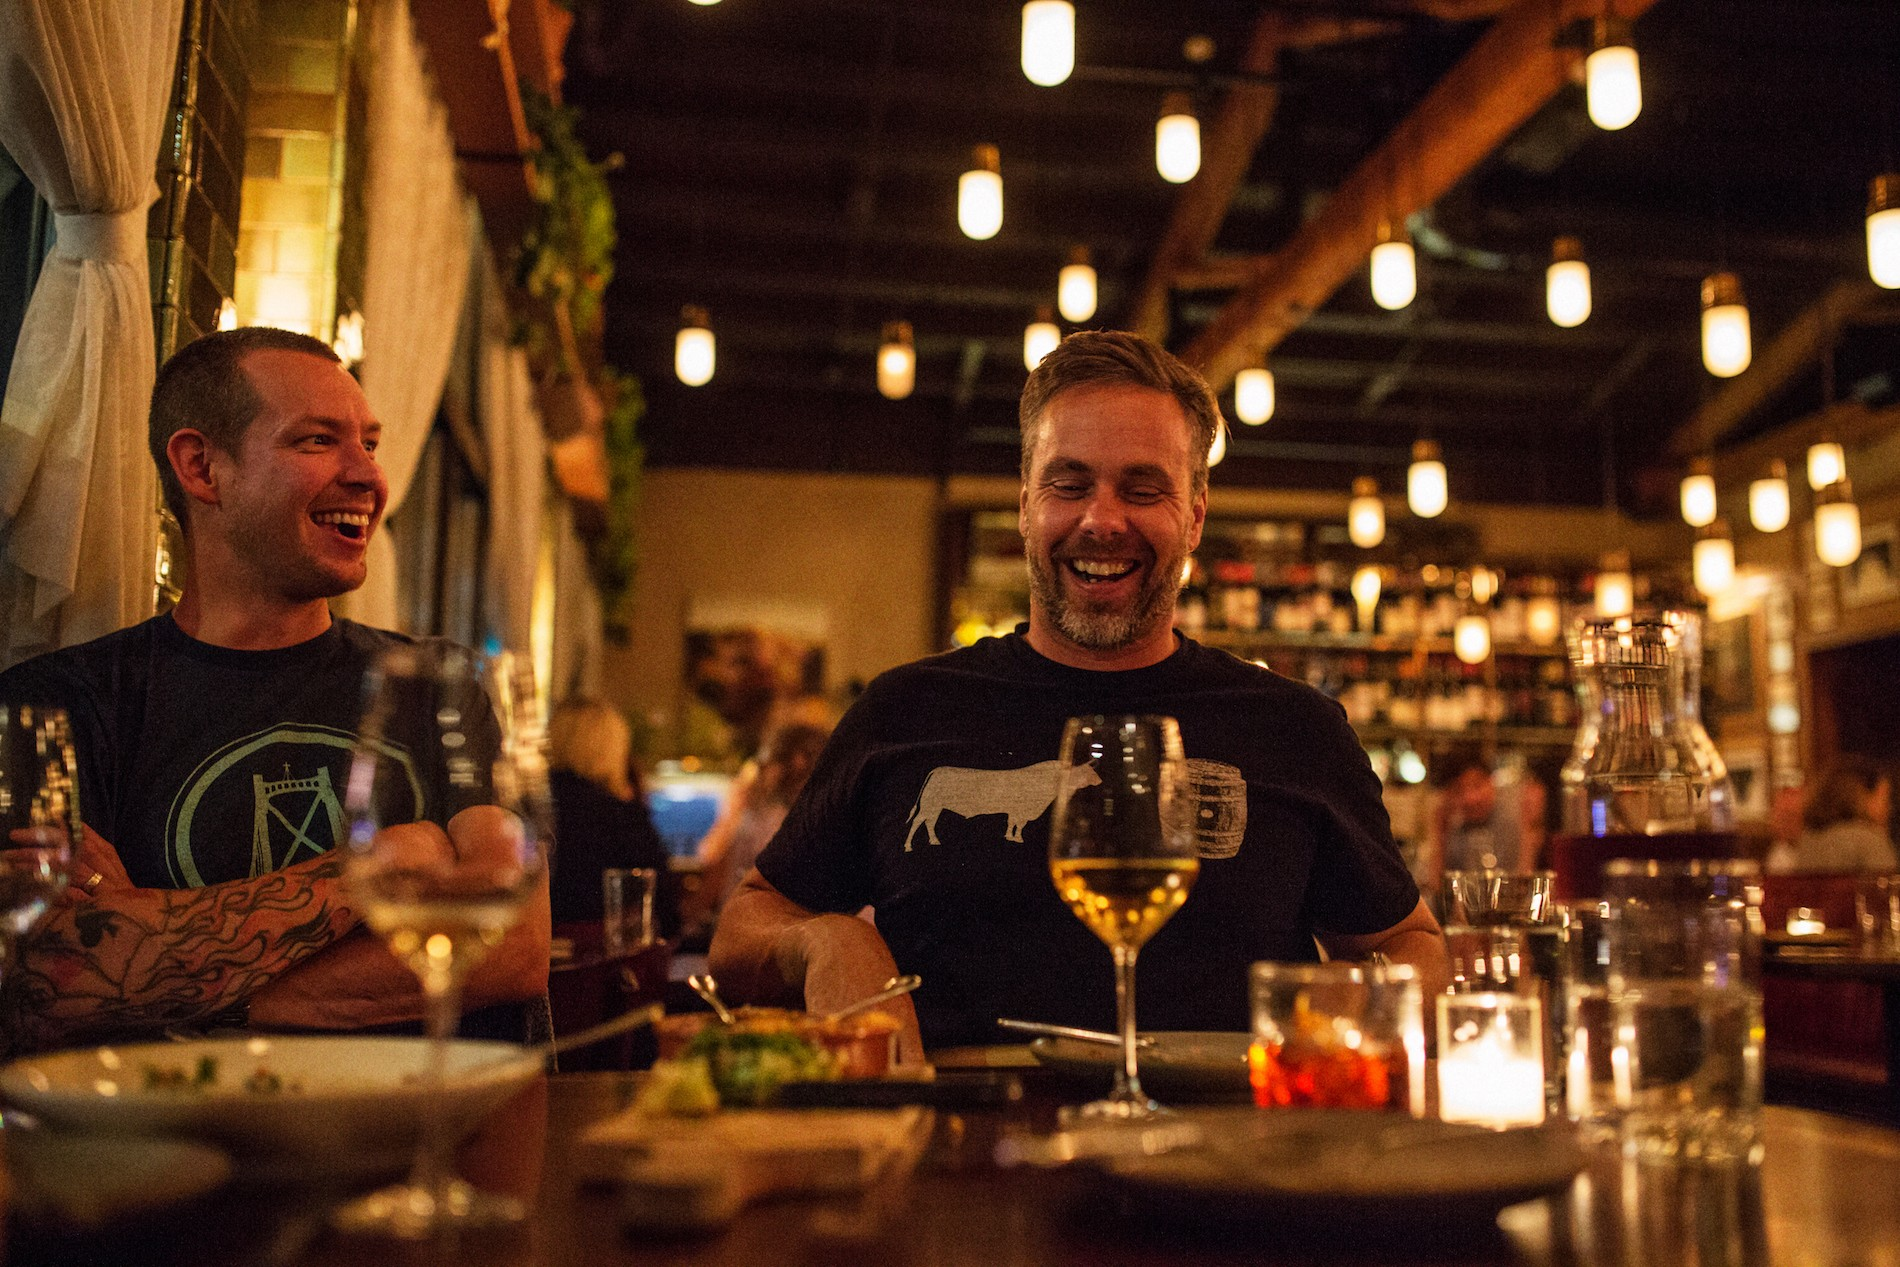 Chefs Lee Cooper and Justin Leboe at Ava Gene's in Portland. Mushrooms in Portland, Oregon. August 2016. Matt Lutton / Boreal Collective for Vice Munchies